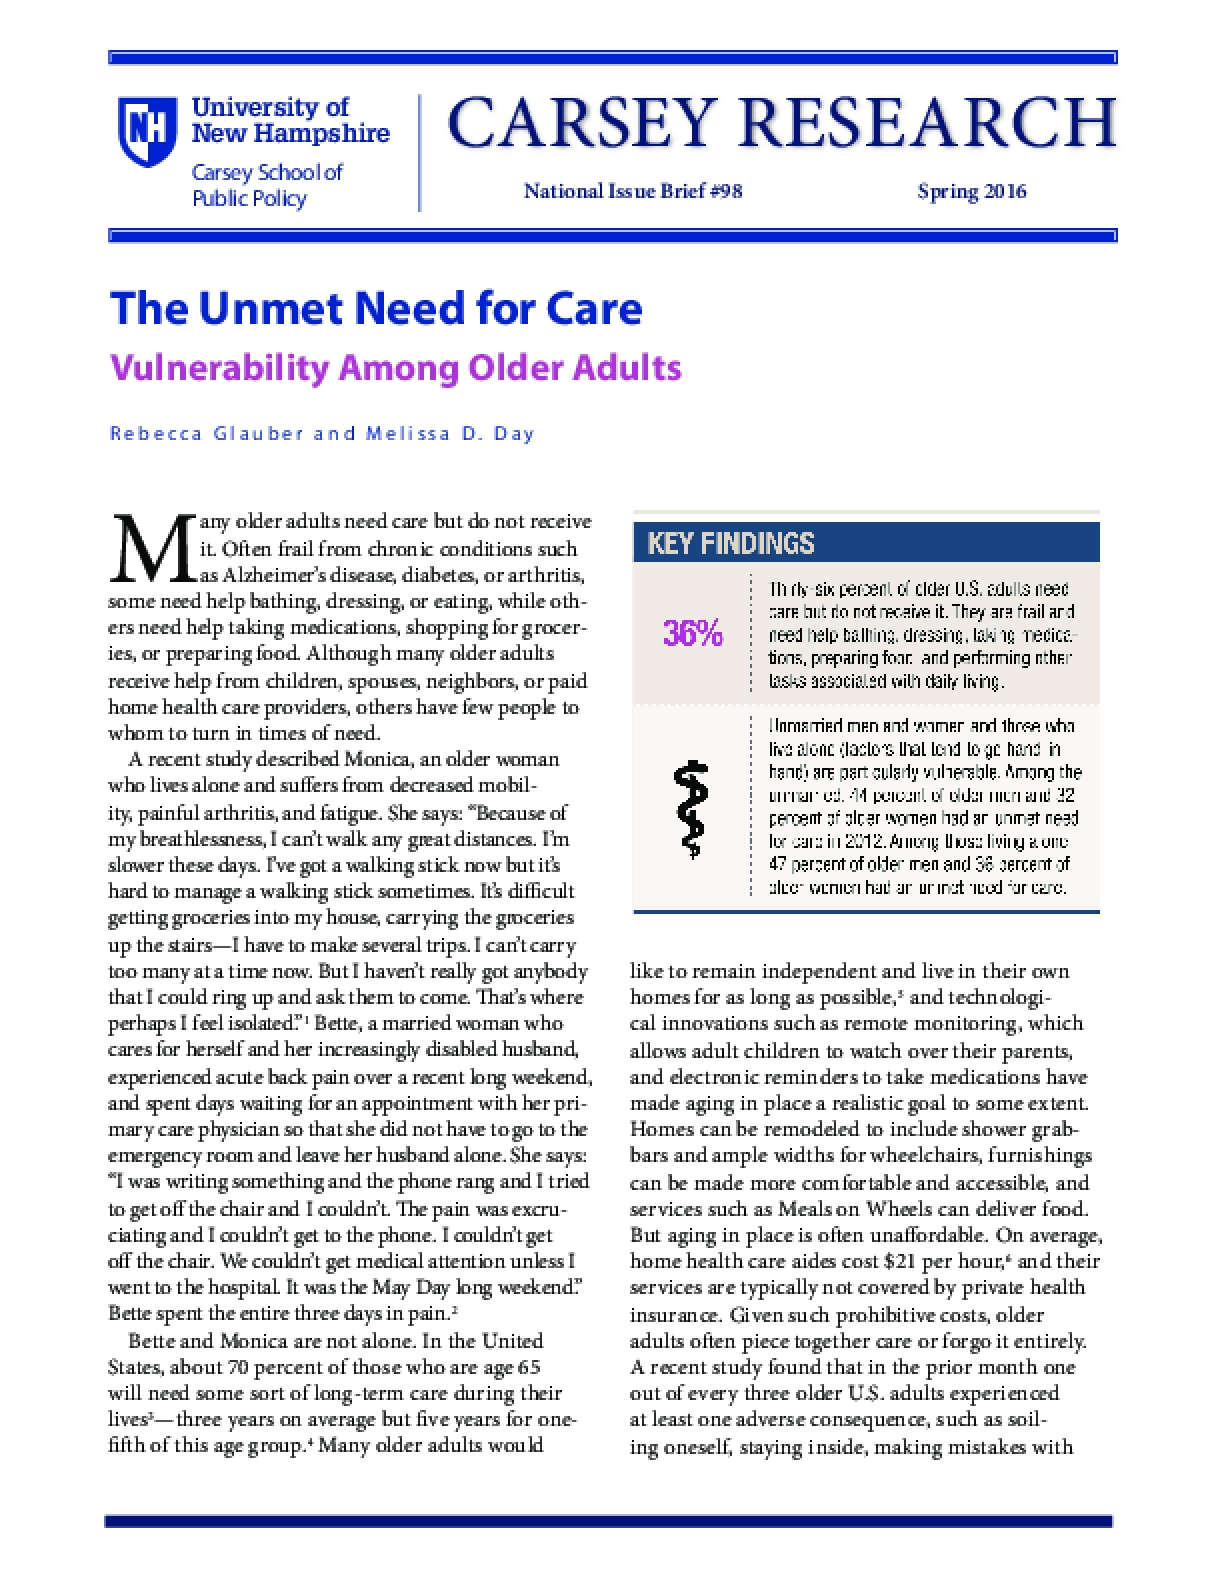 The Unmet Need for Care